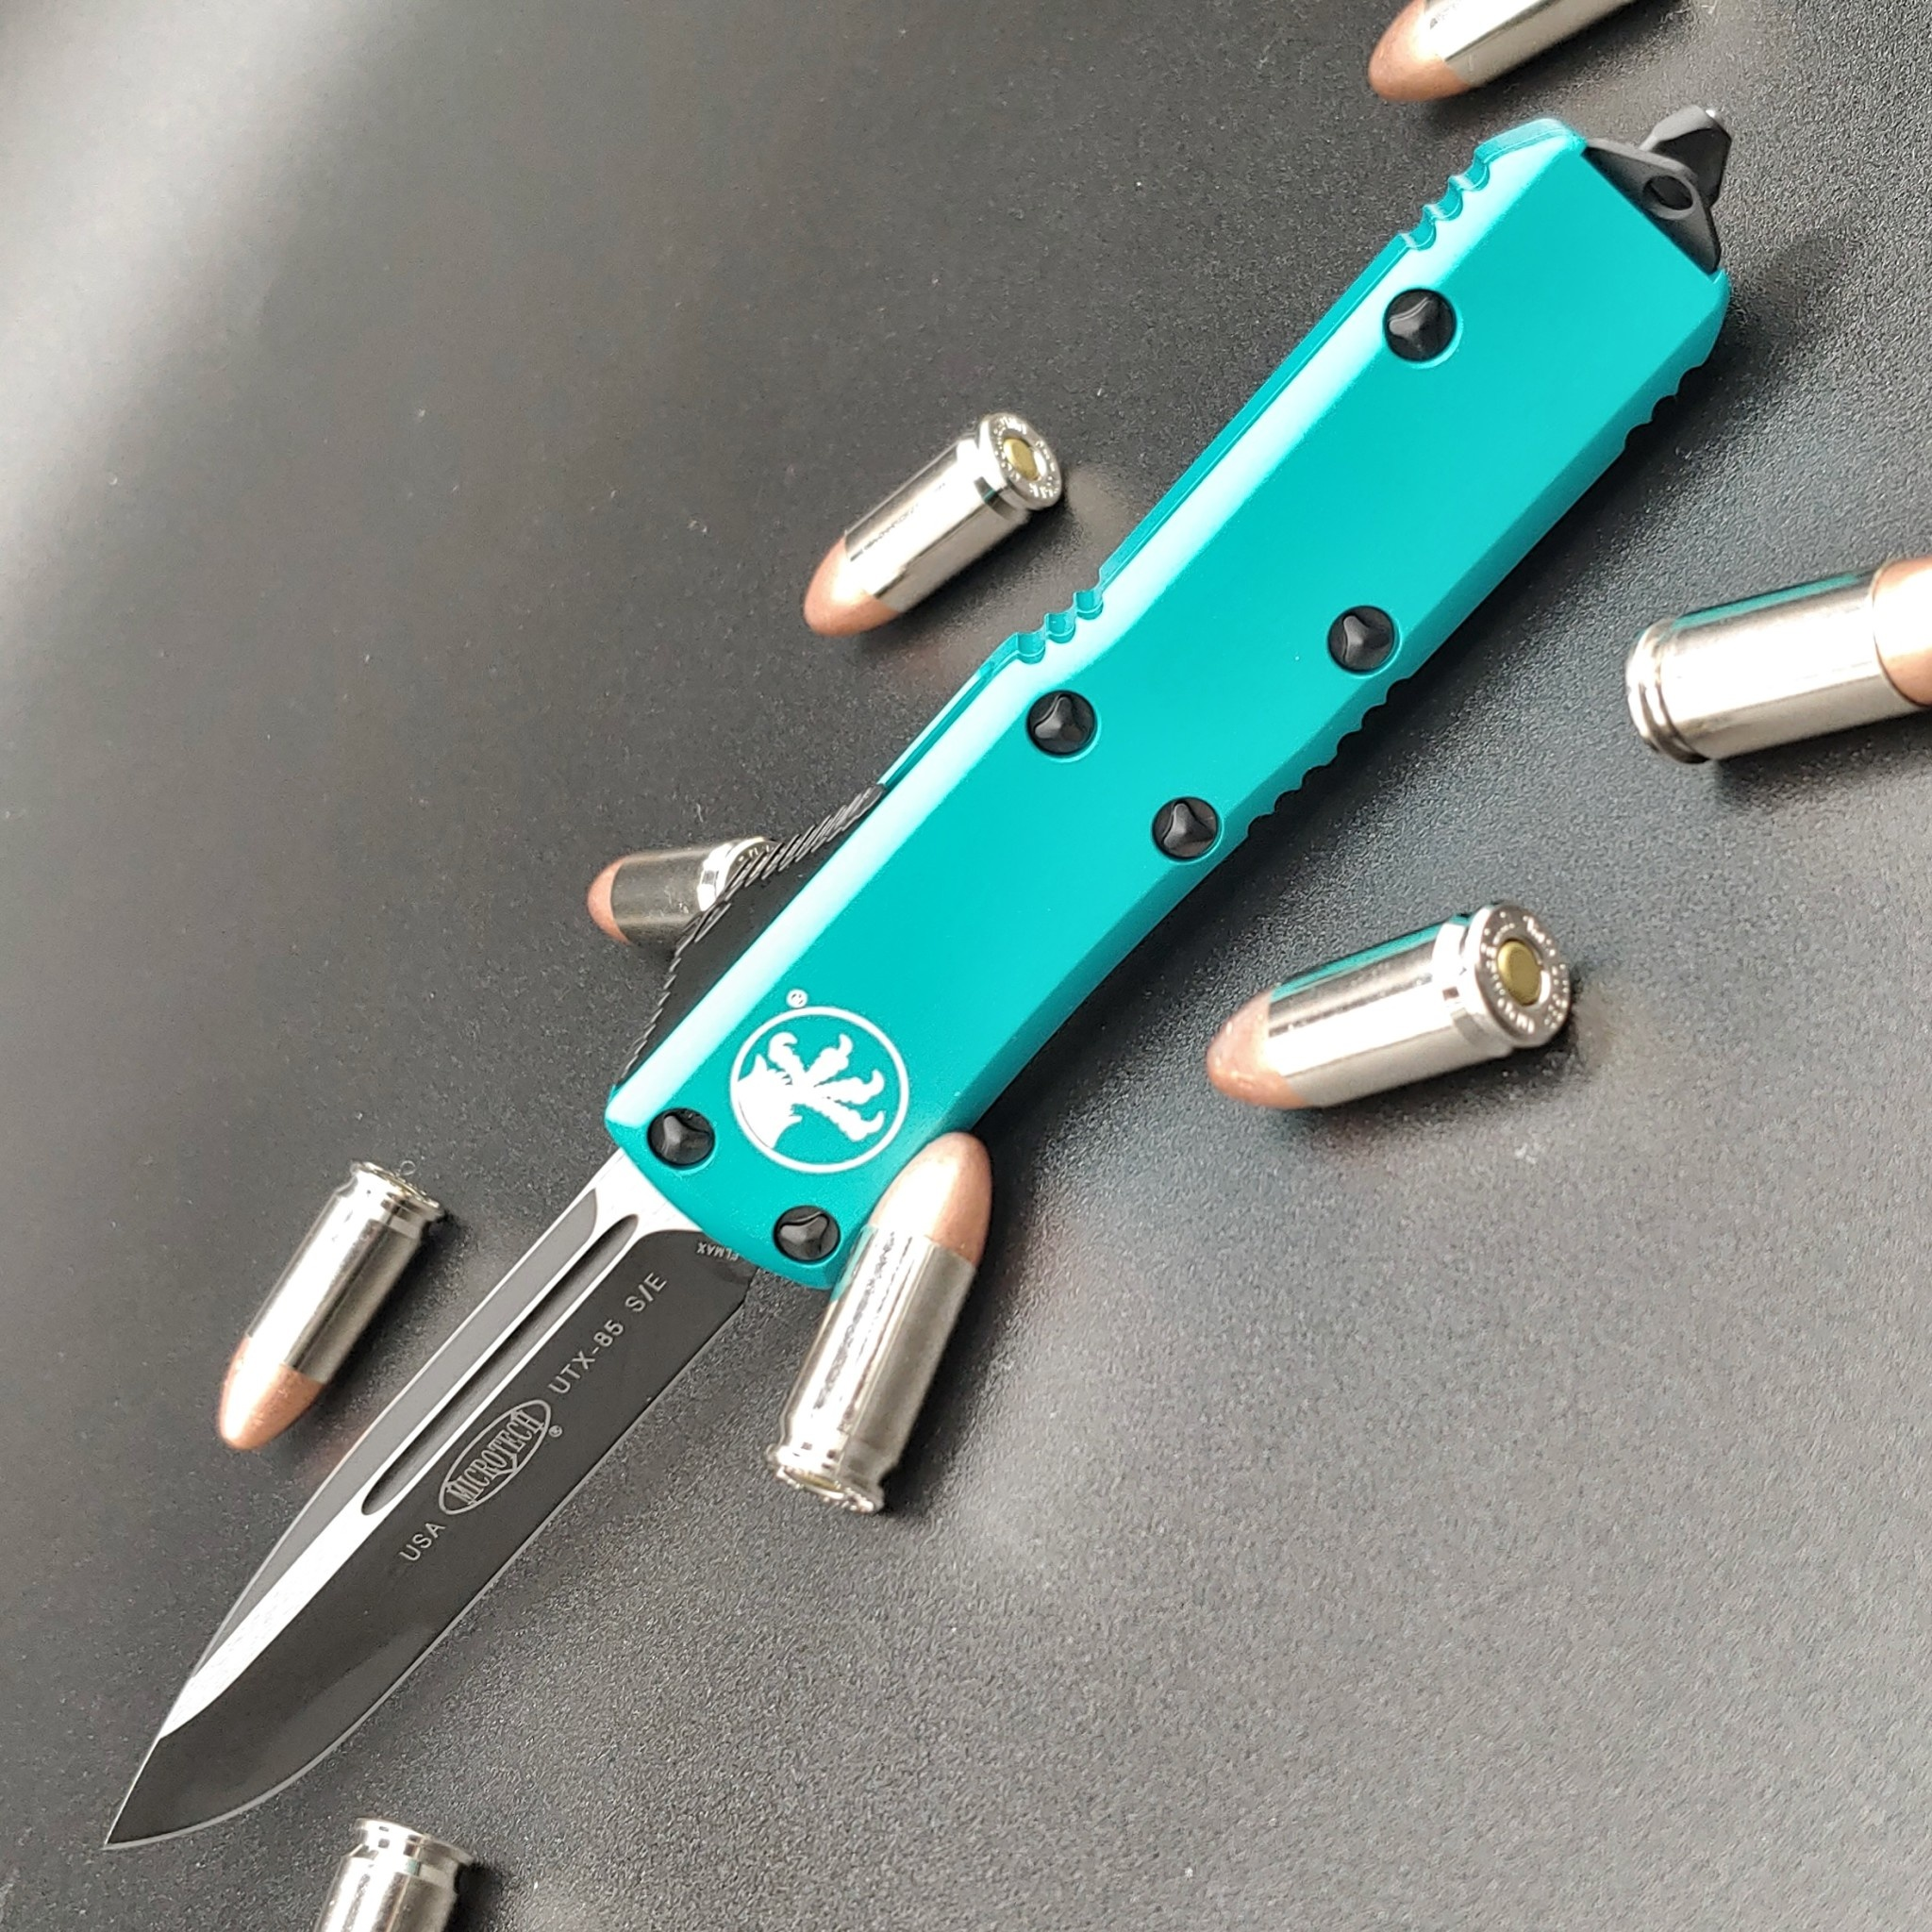 Microtech UTX-85, Turquoise frame,  blade - single edge black standard